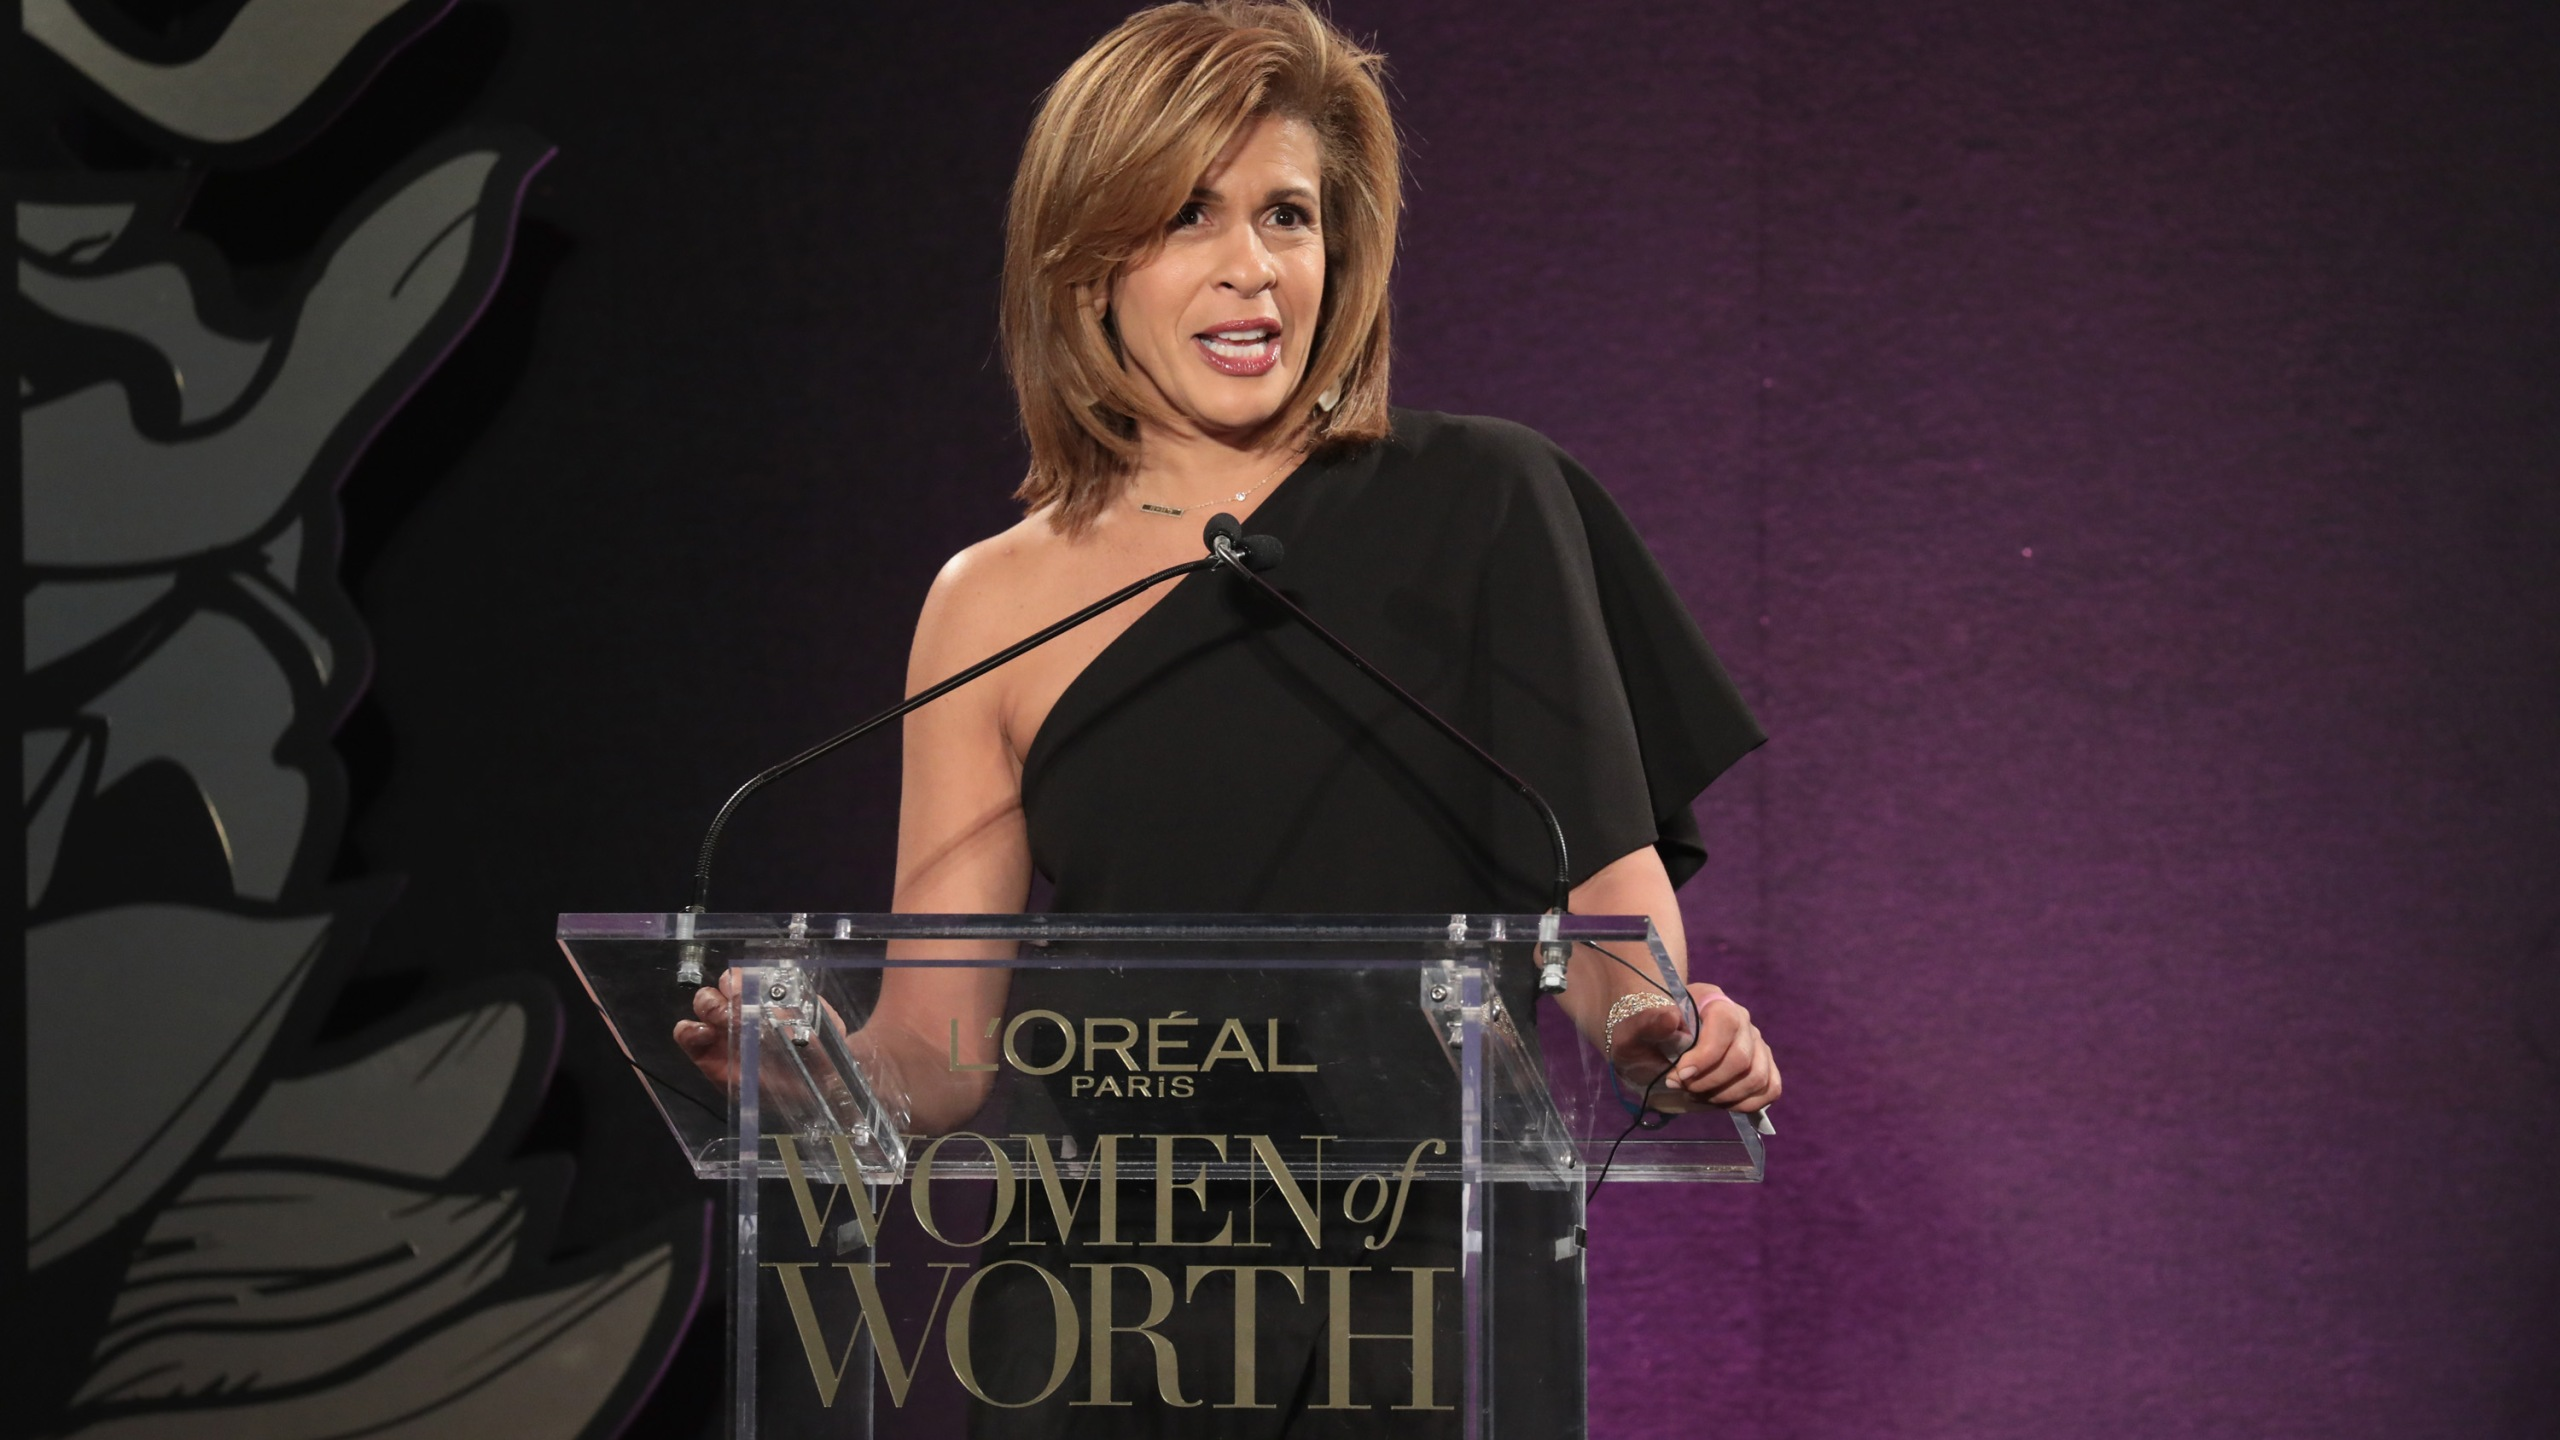 Hoda Kotb speaks onstage during the L'Oreal Paris Women of Worth Celebration 2017 on December 6, 2017 in New York City. (Credit: Cindy Ord/Getty Images for L'Oreal)